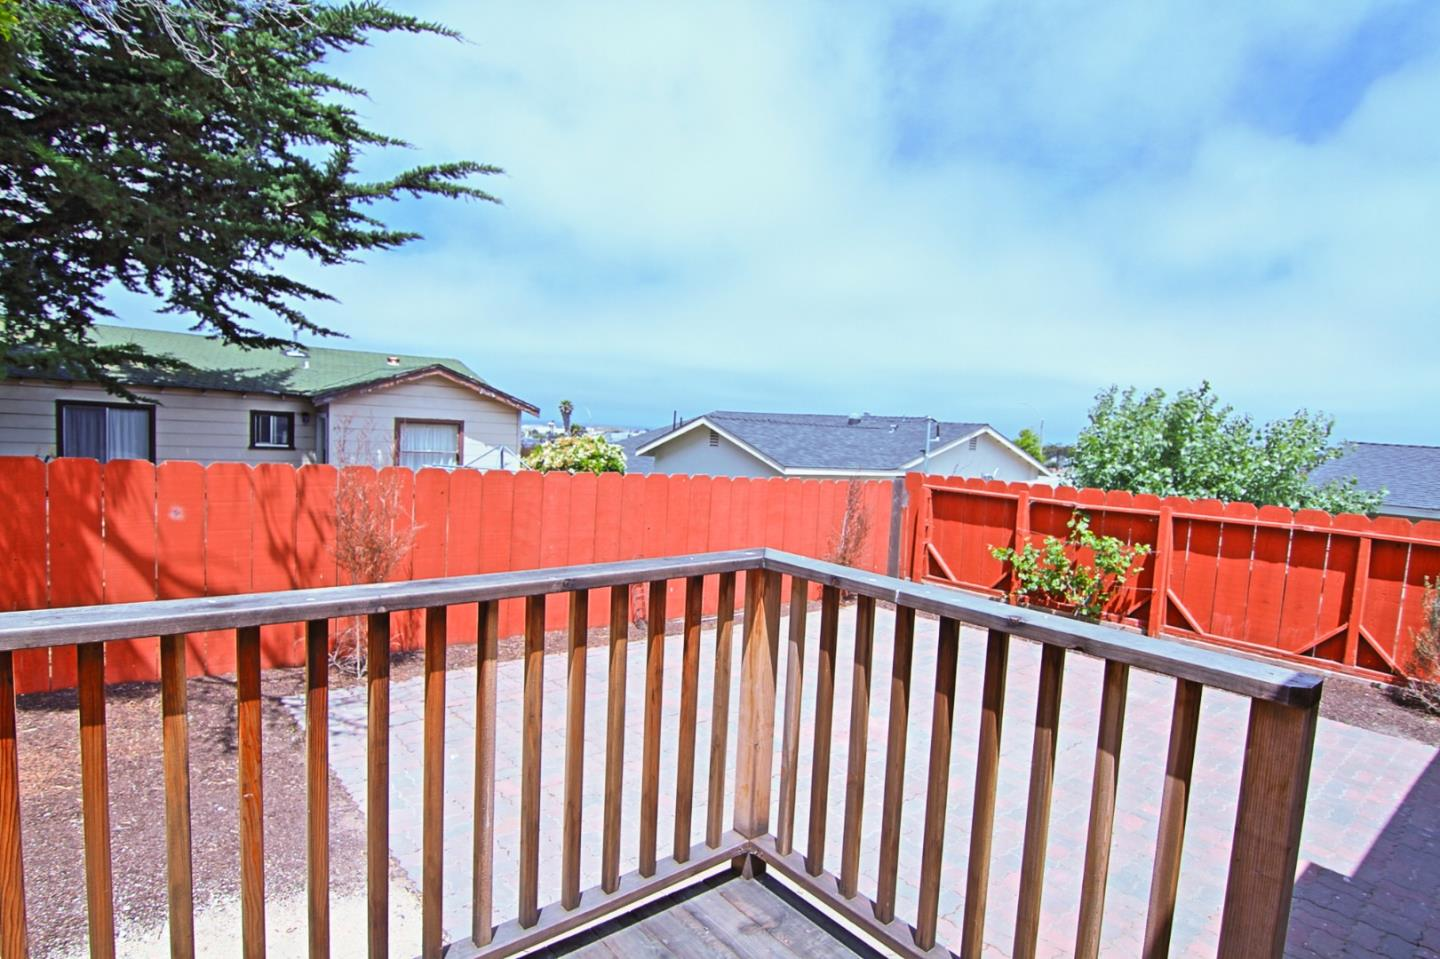 Additional photo for property listing at 1641 Judson Street  Seaside, Kalifornien 93955 Vereinigte Staaten